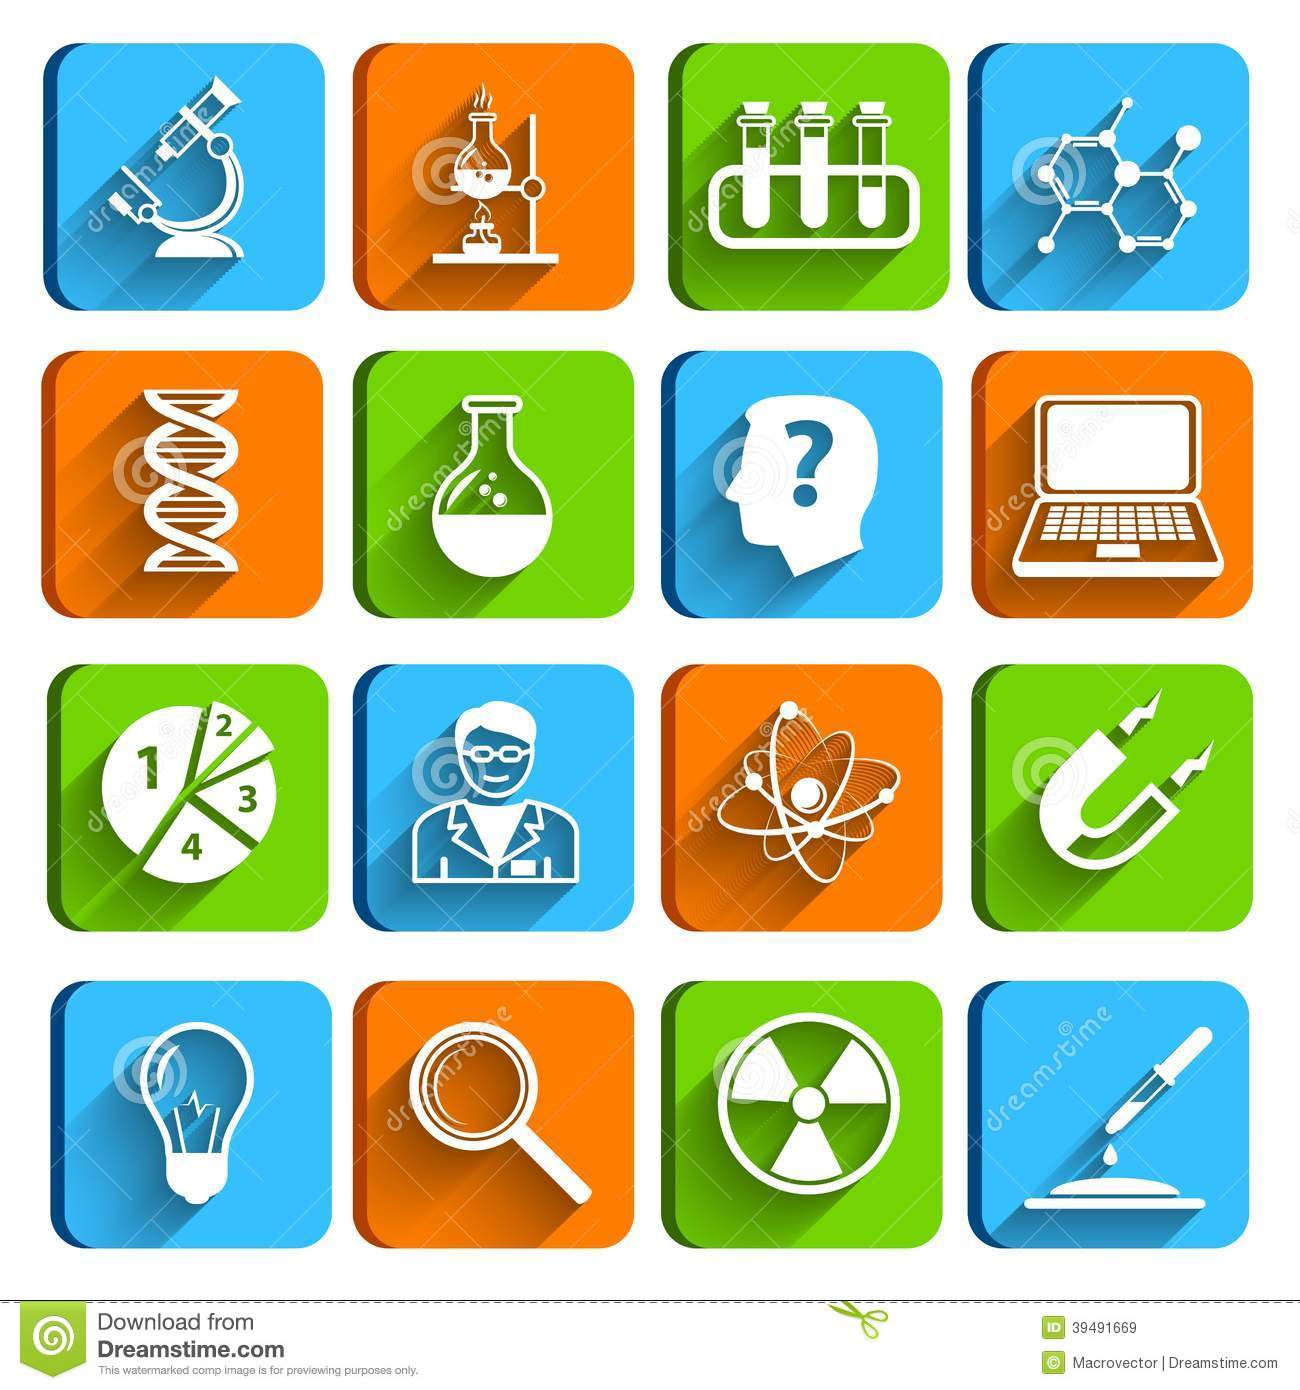 Medical laboratory science clipart.